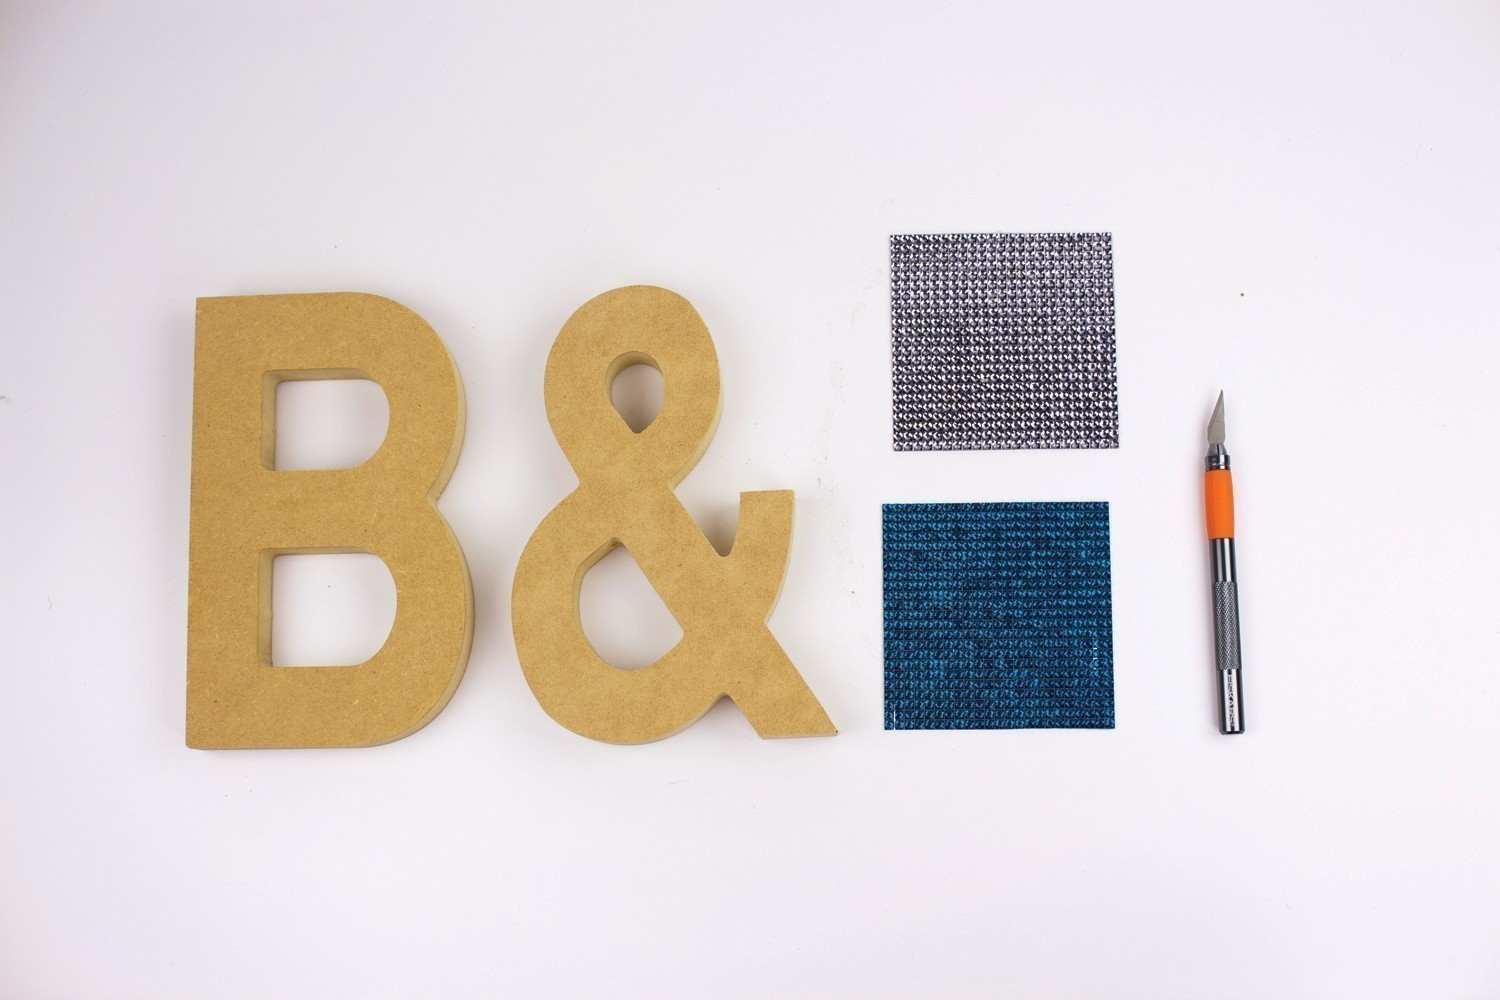 rhinestone letter bookends  u00b7 extract from diy bedroom